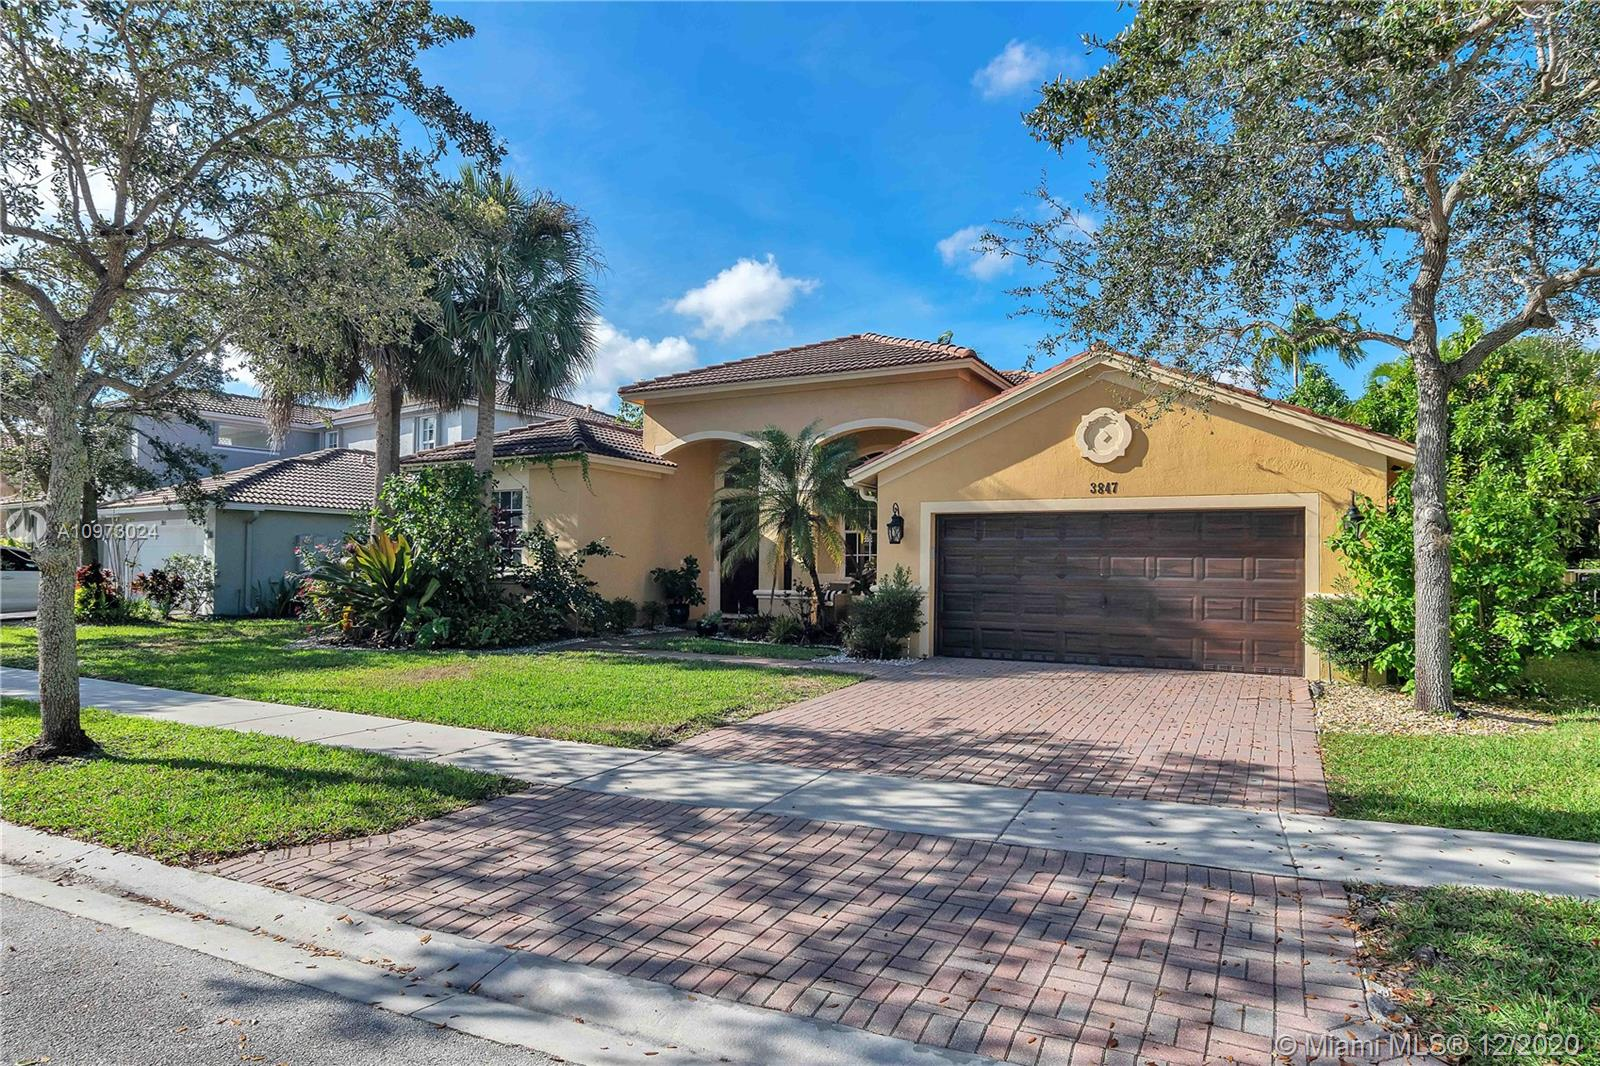 Gorgeous 4 bed/3 bath, with pool and water view in sought after Isles at Weston, zoned for Falcon Cove and Cypress Bay High! This amazing 1 story home shows like a model: neutral colors, convenient 3 way split floor layout, very spacious dining room and large living room overlooking the pool, with luscious landscaping, and huge covered patio area, ideal for relaxing after a long day. High ceilings, bright and airy floor plan, kitchen overlooking the breakfast nook and a wonderful family room, great for entertaining. Large Master Bedroom with direct access to the pool area, Junior suite with its own full bathroom, also used as cabana bath, perfect for guests, office or in-laws. 2 more bedrooms share the 3rd bath. Fantastic amenities including club house, gym, tot lot and more! Call today!